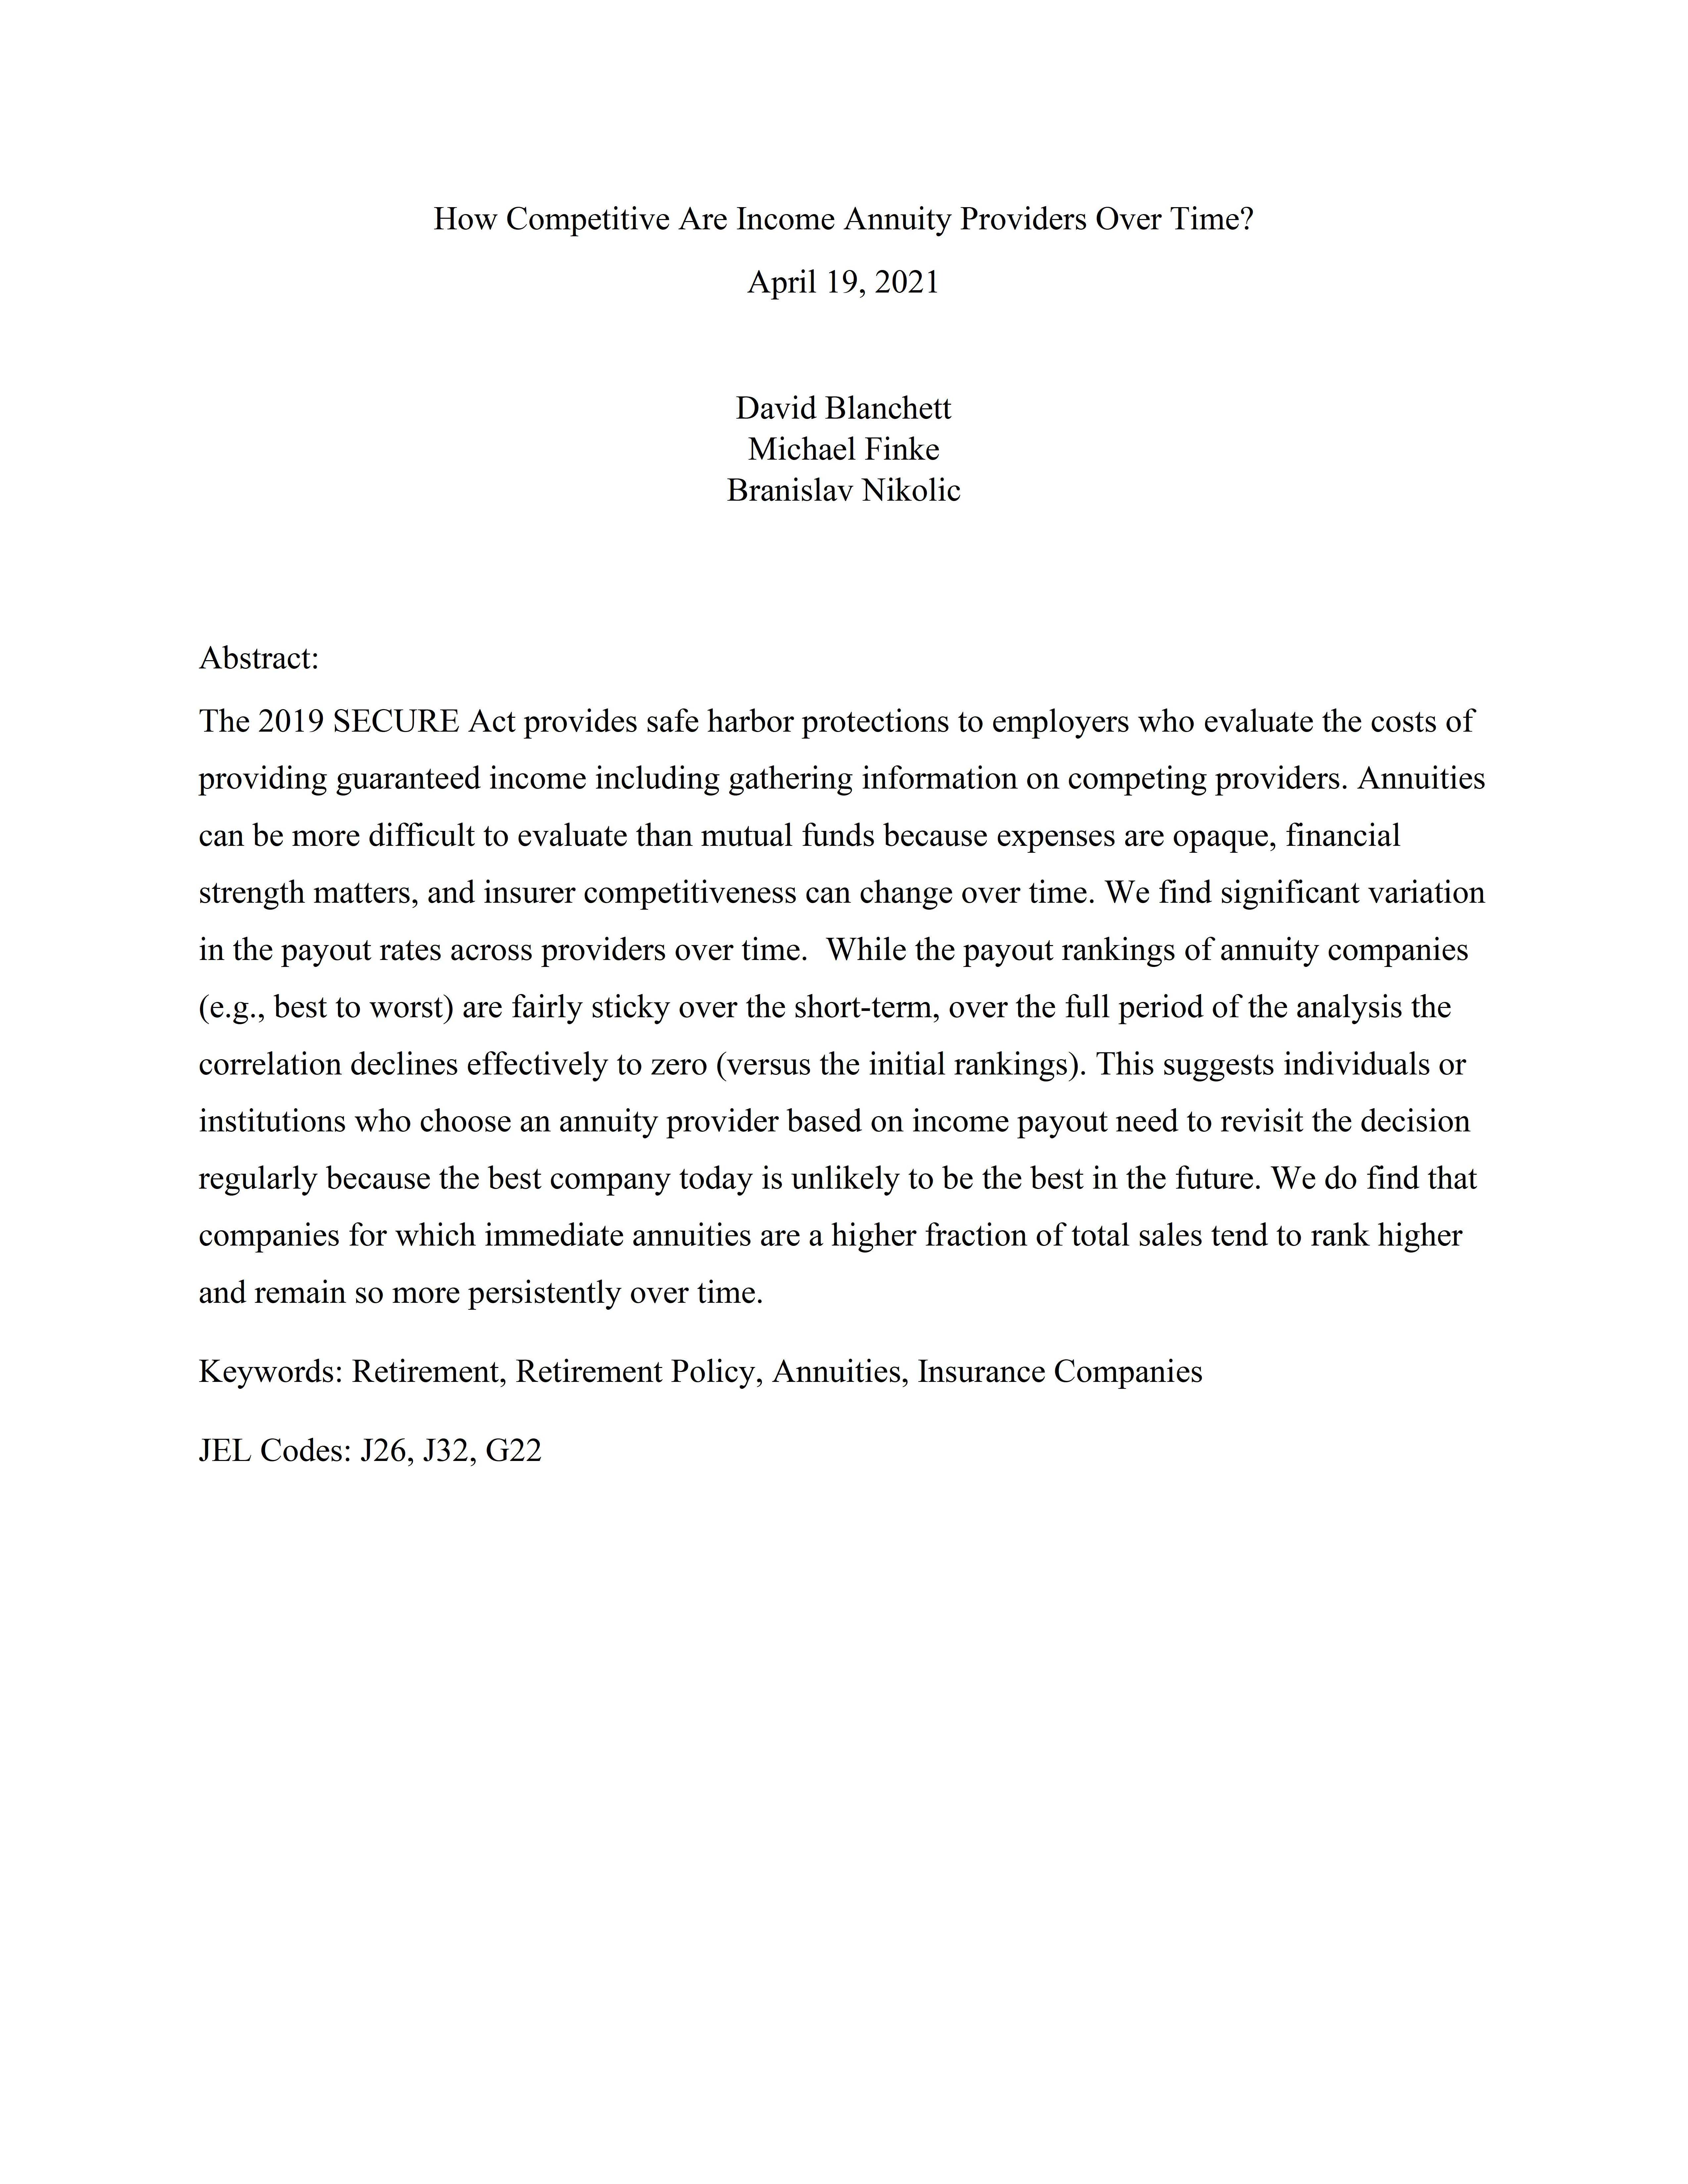 annuity-price-competitiveness-ssrn-tn